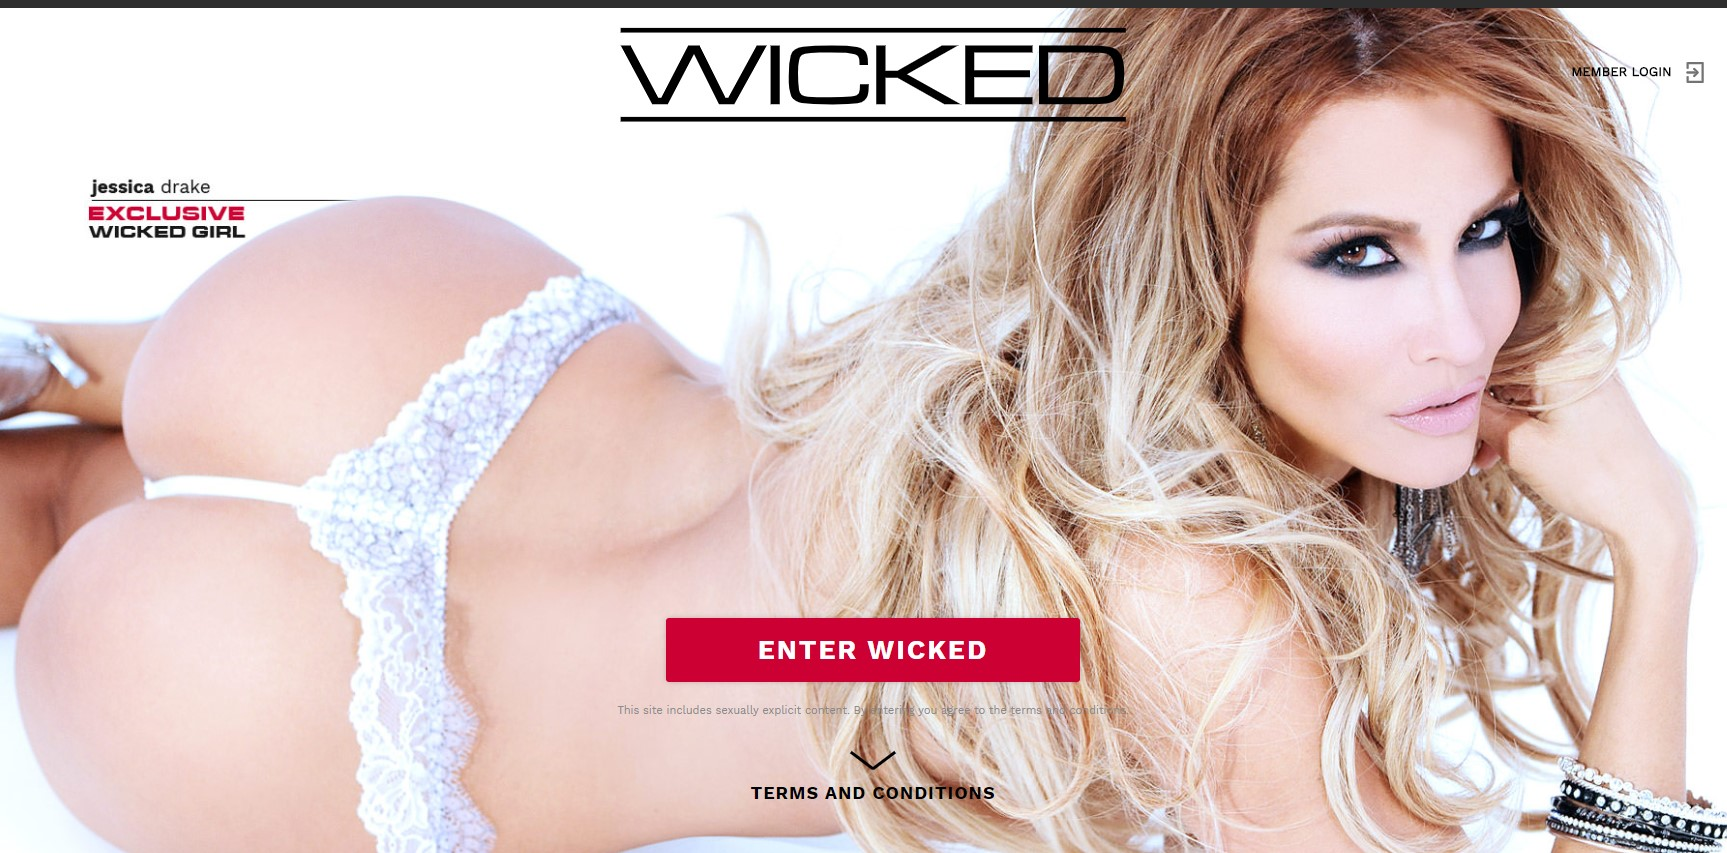 Wicked.com review & discount – the lowest membership price available today